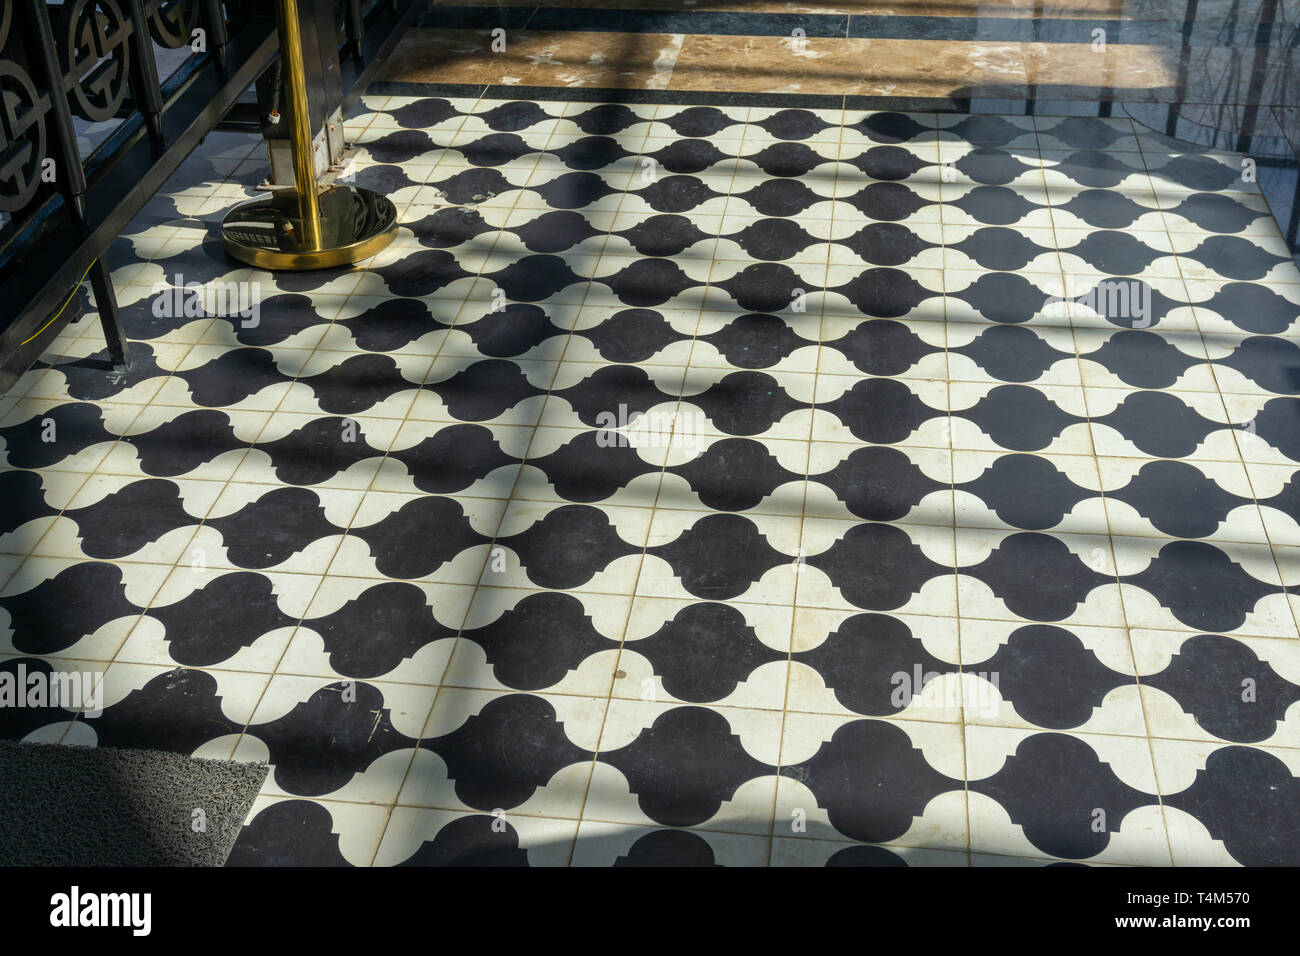 Black And White Checkered Floor Grunge Tiles Marble Surface